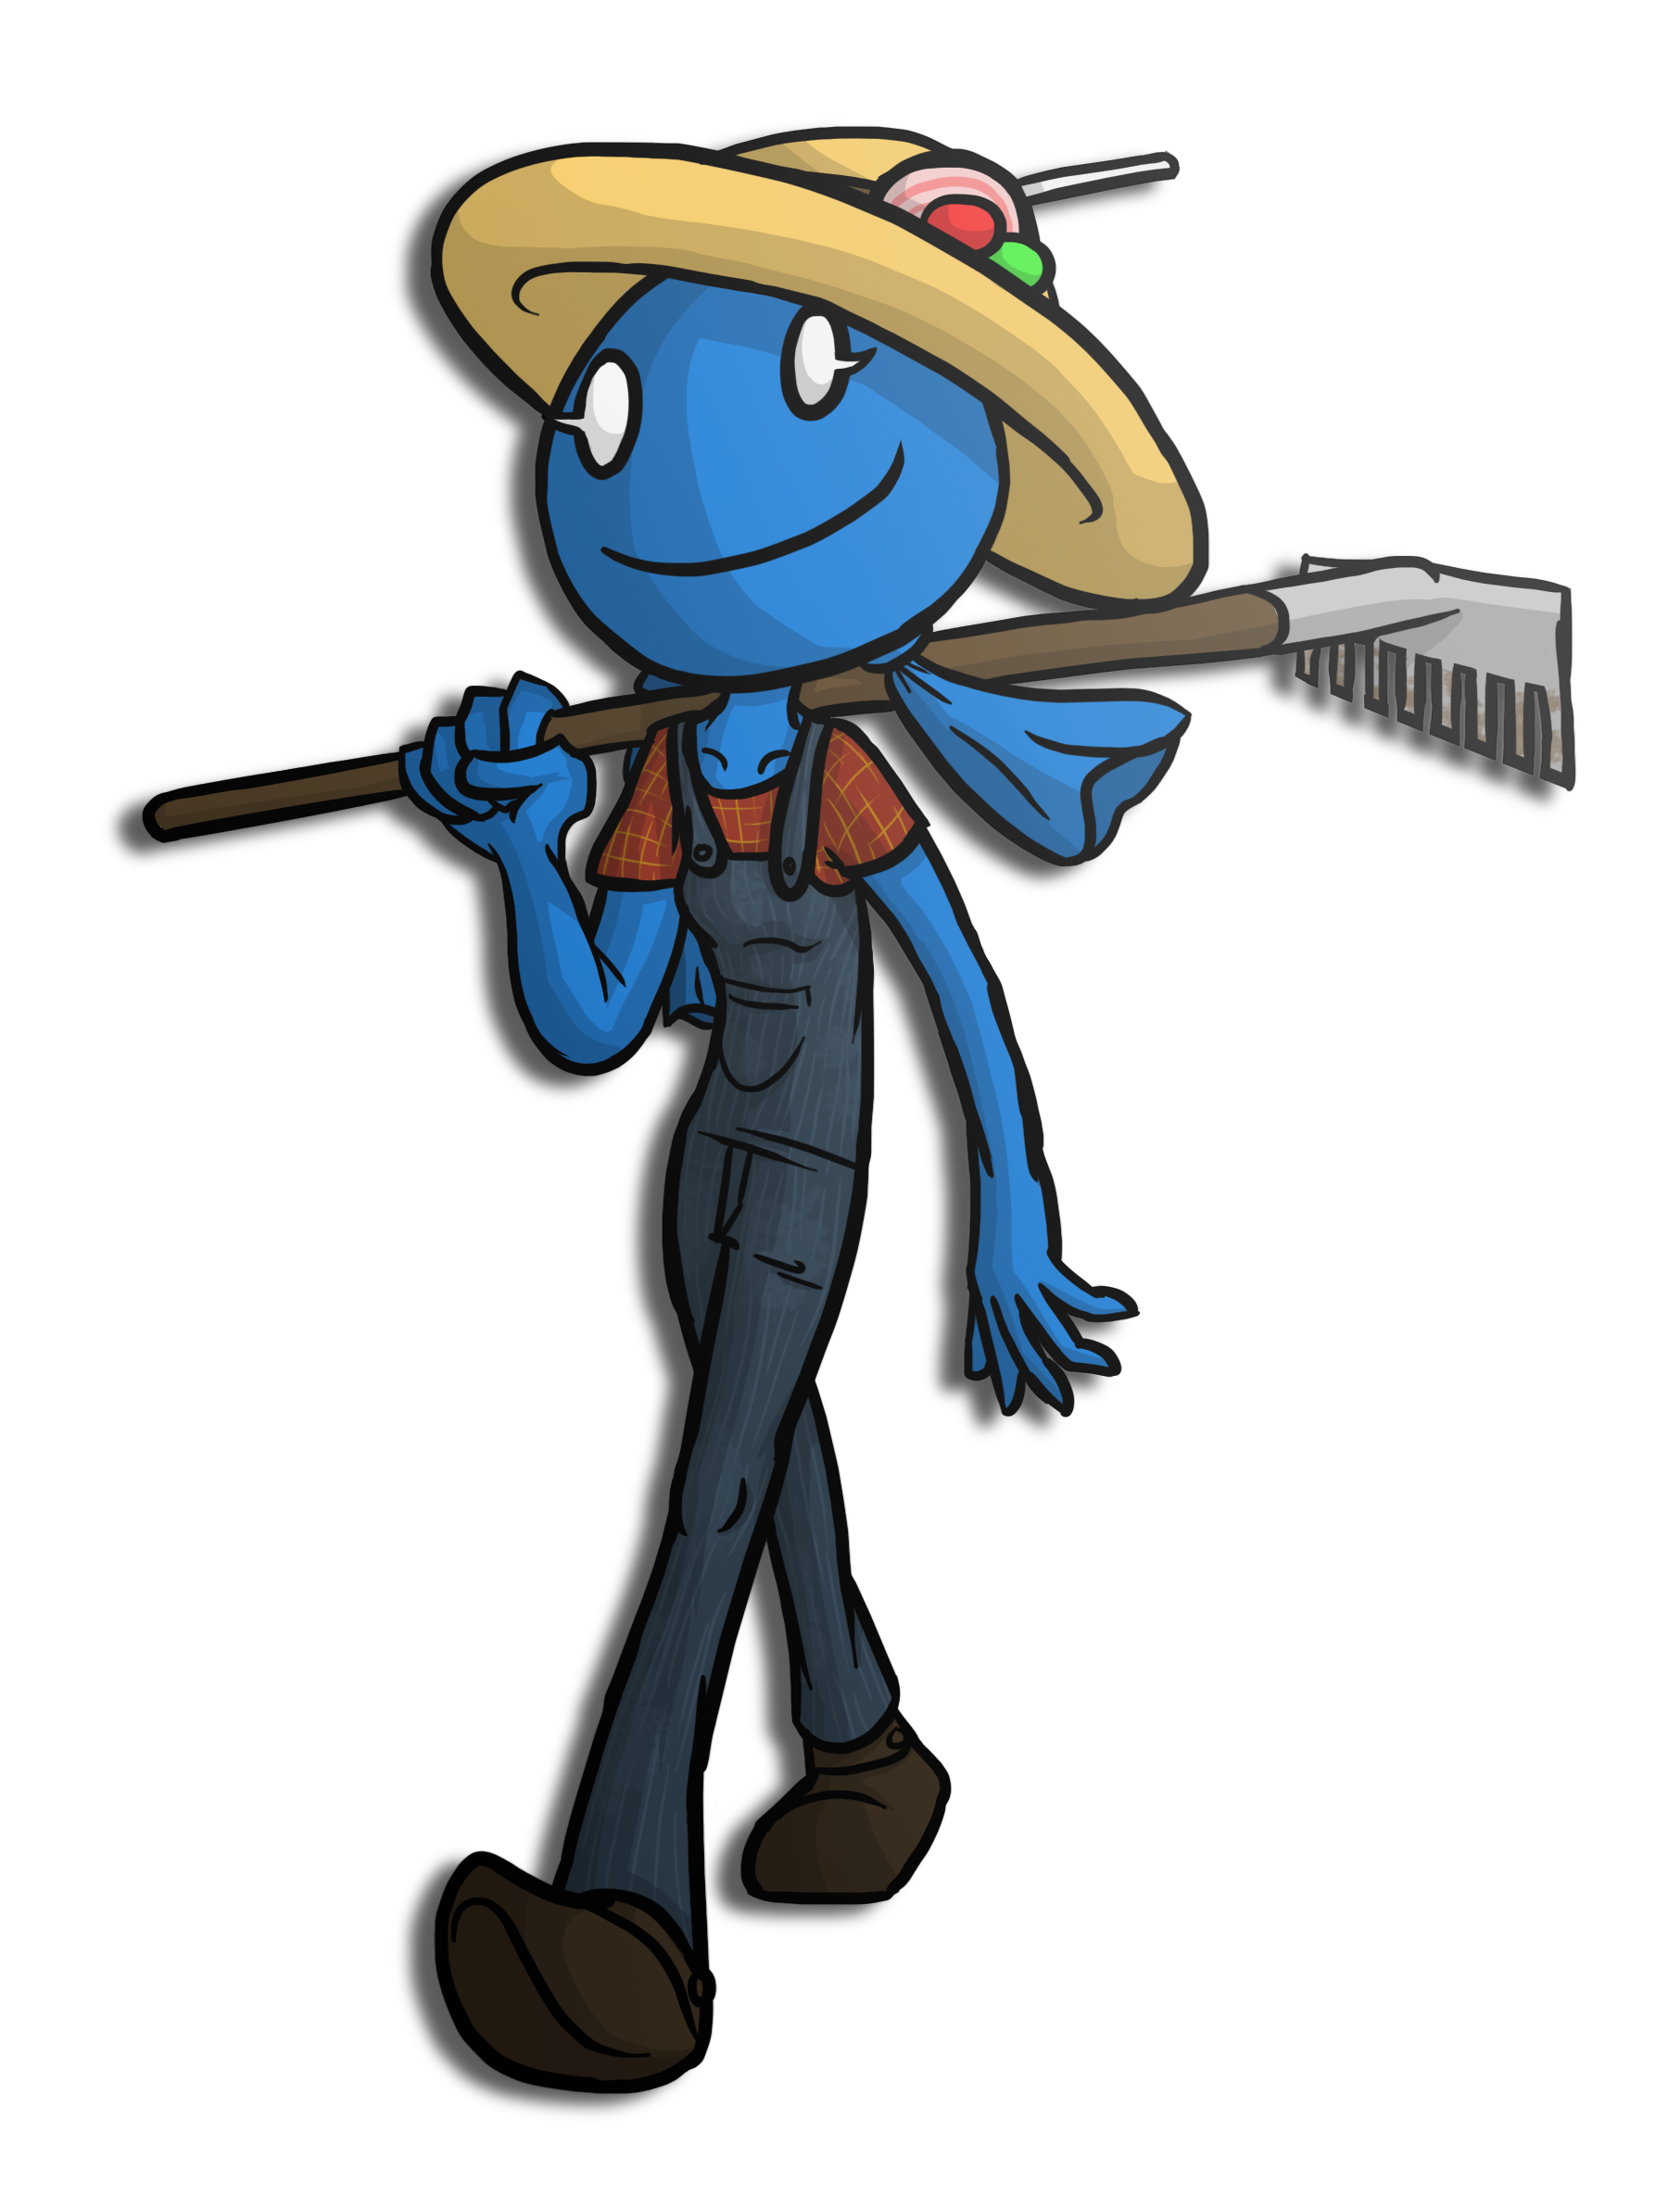 Character Design Challenge - Day 20 - Jolly Rancher